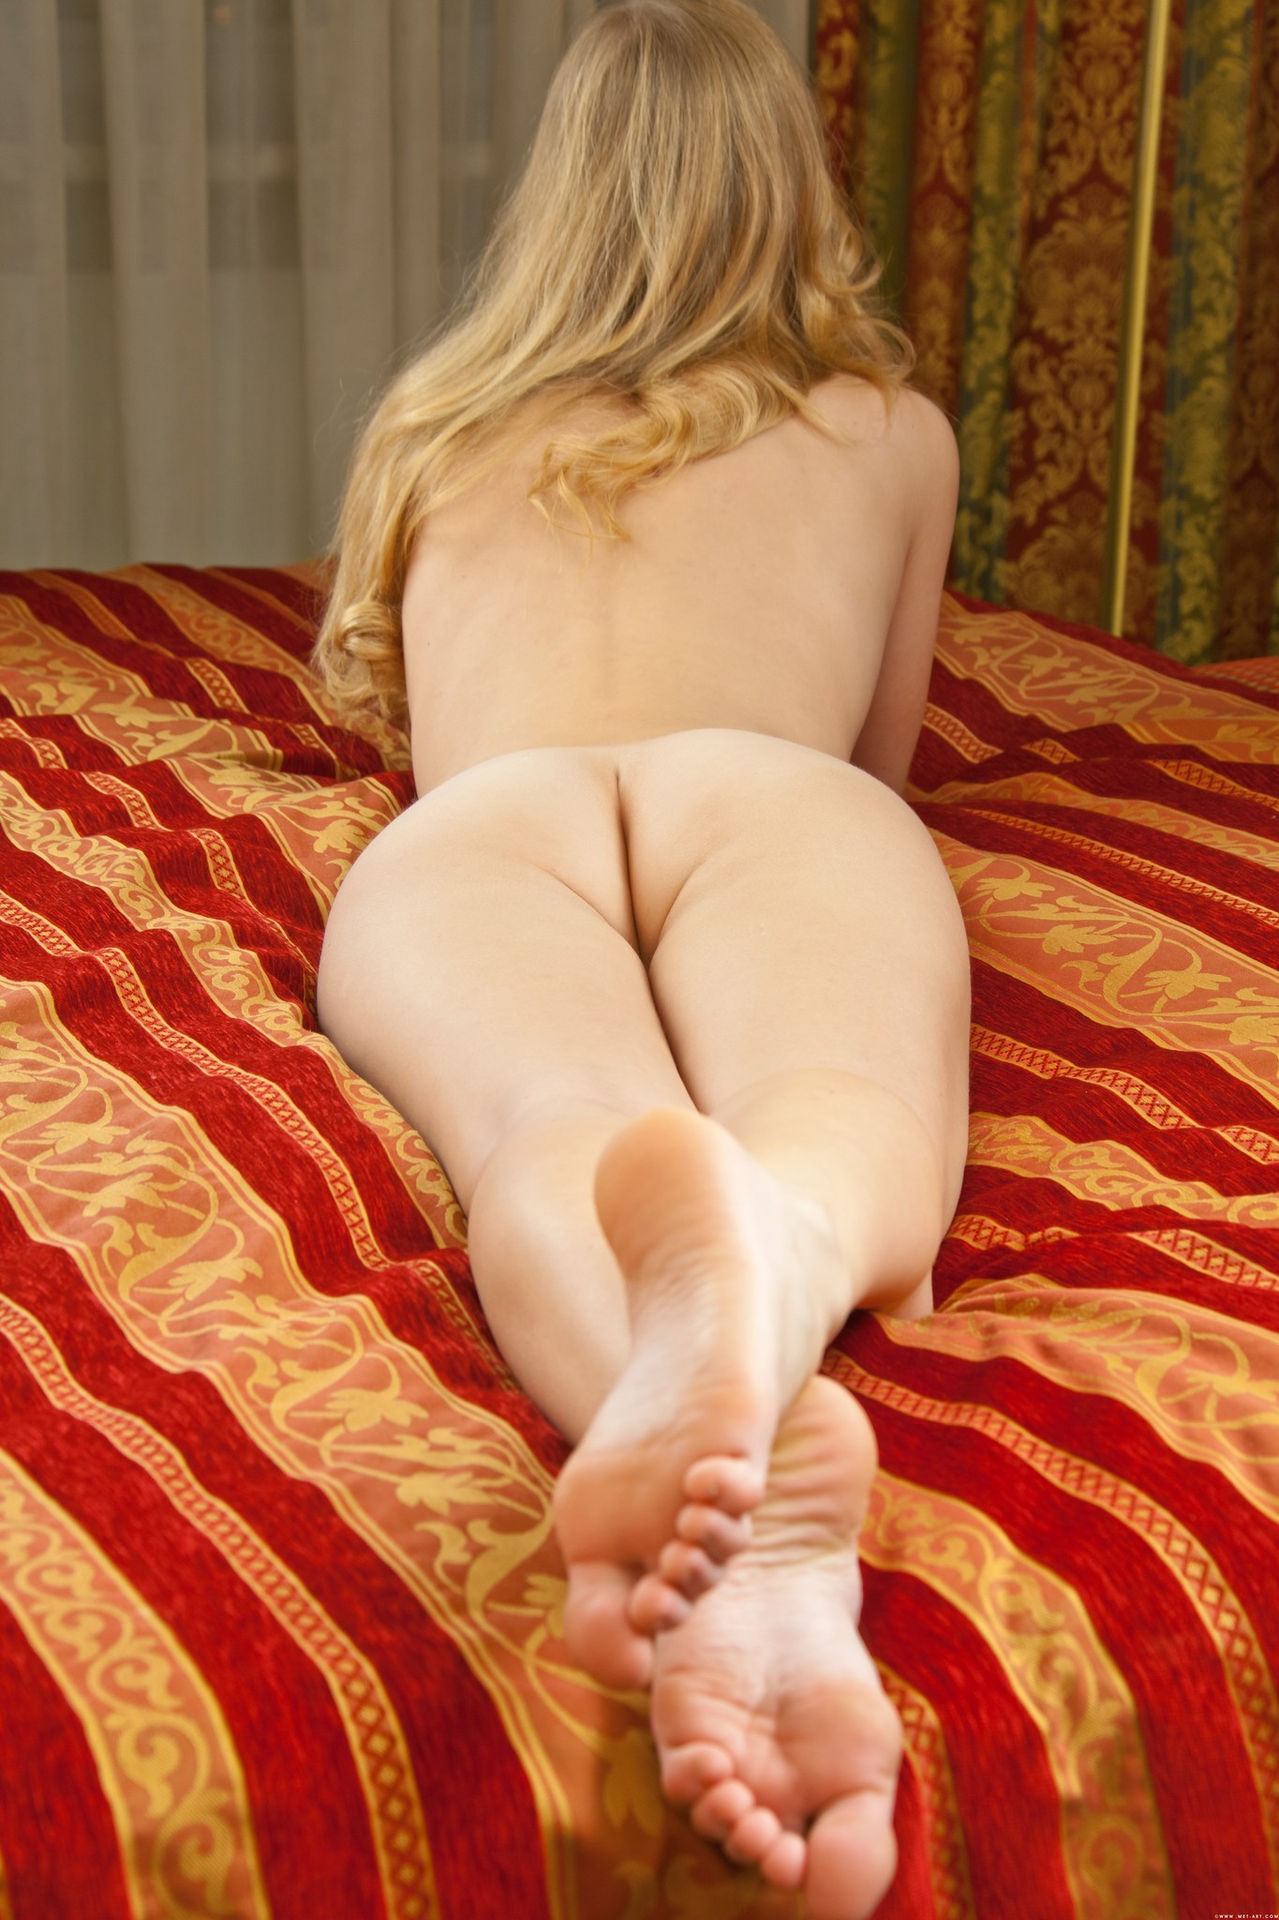 feet-fetish-nude-girls-foot-mix-vol5-07